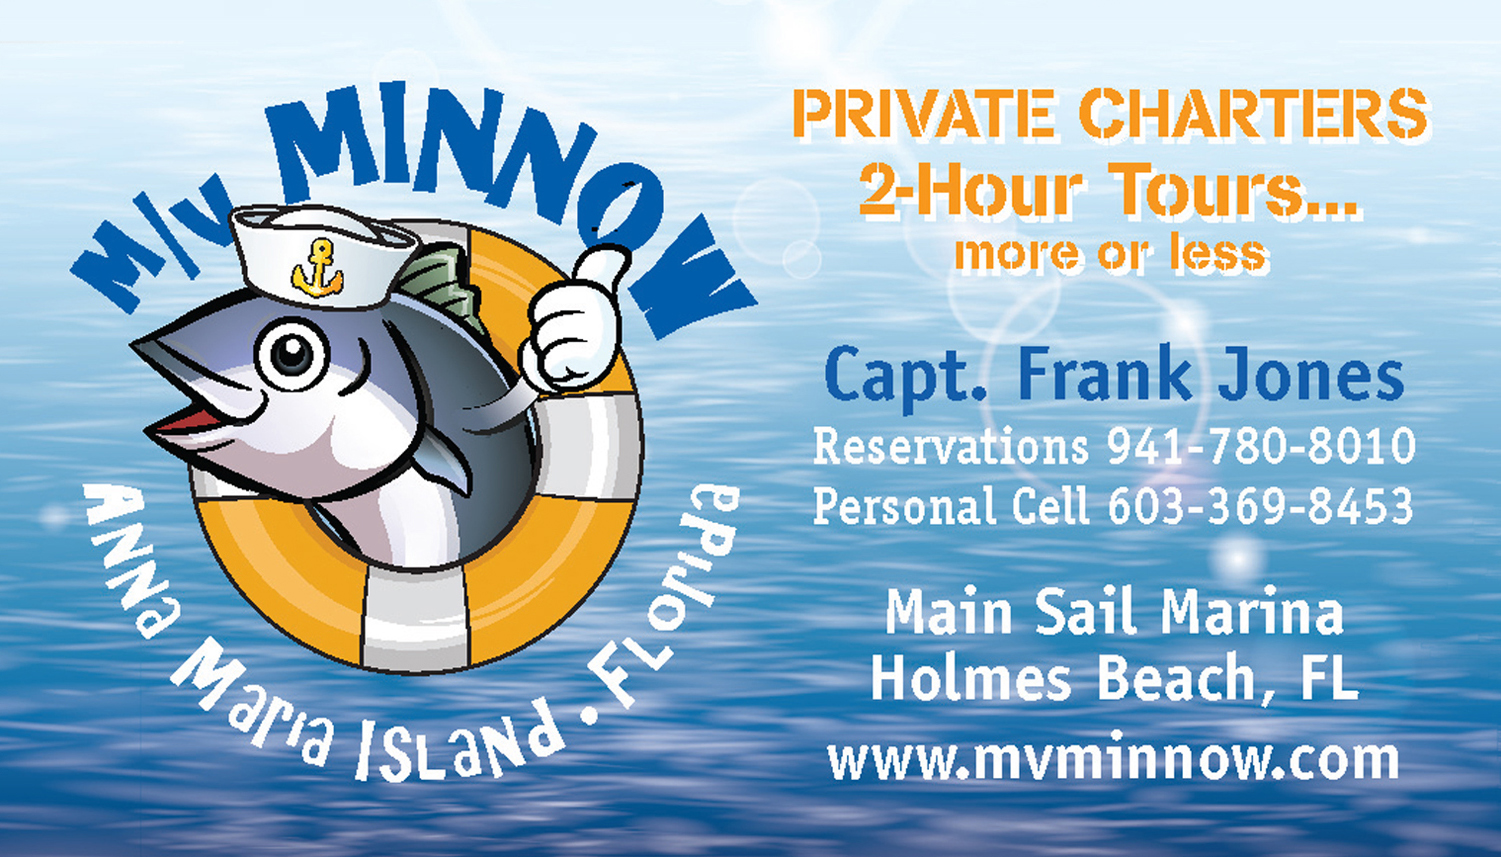 M/V Minnow — Frank Jones